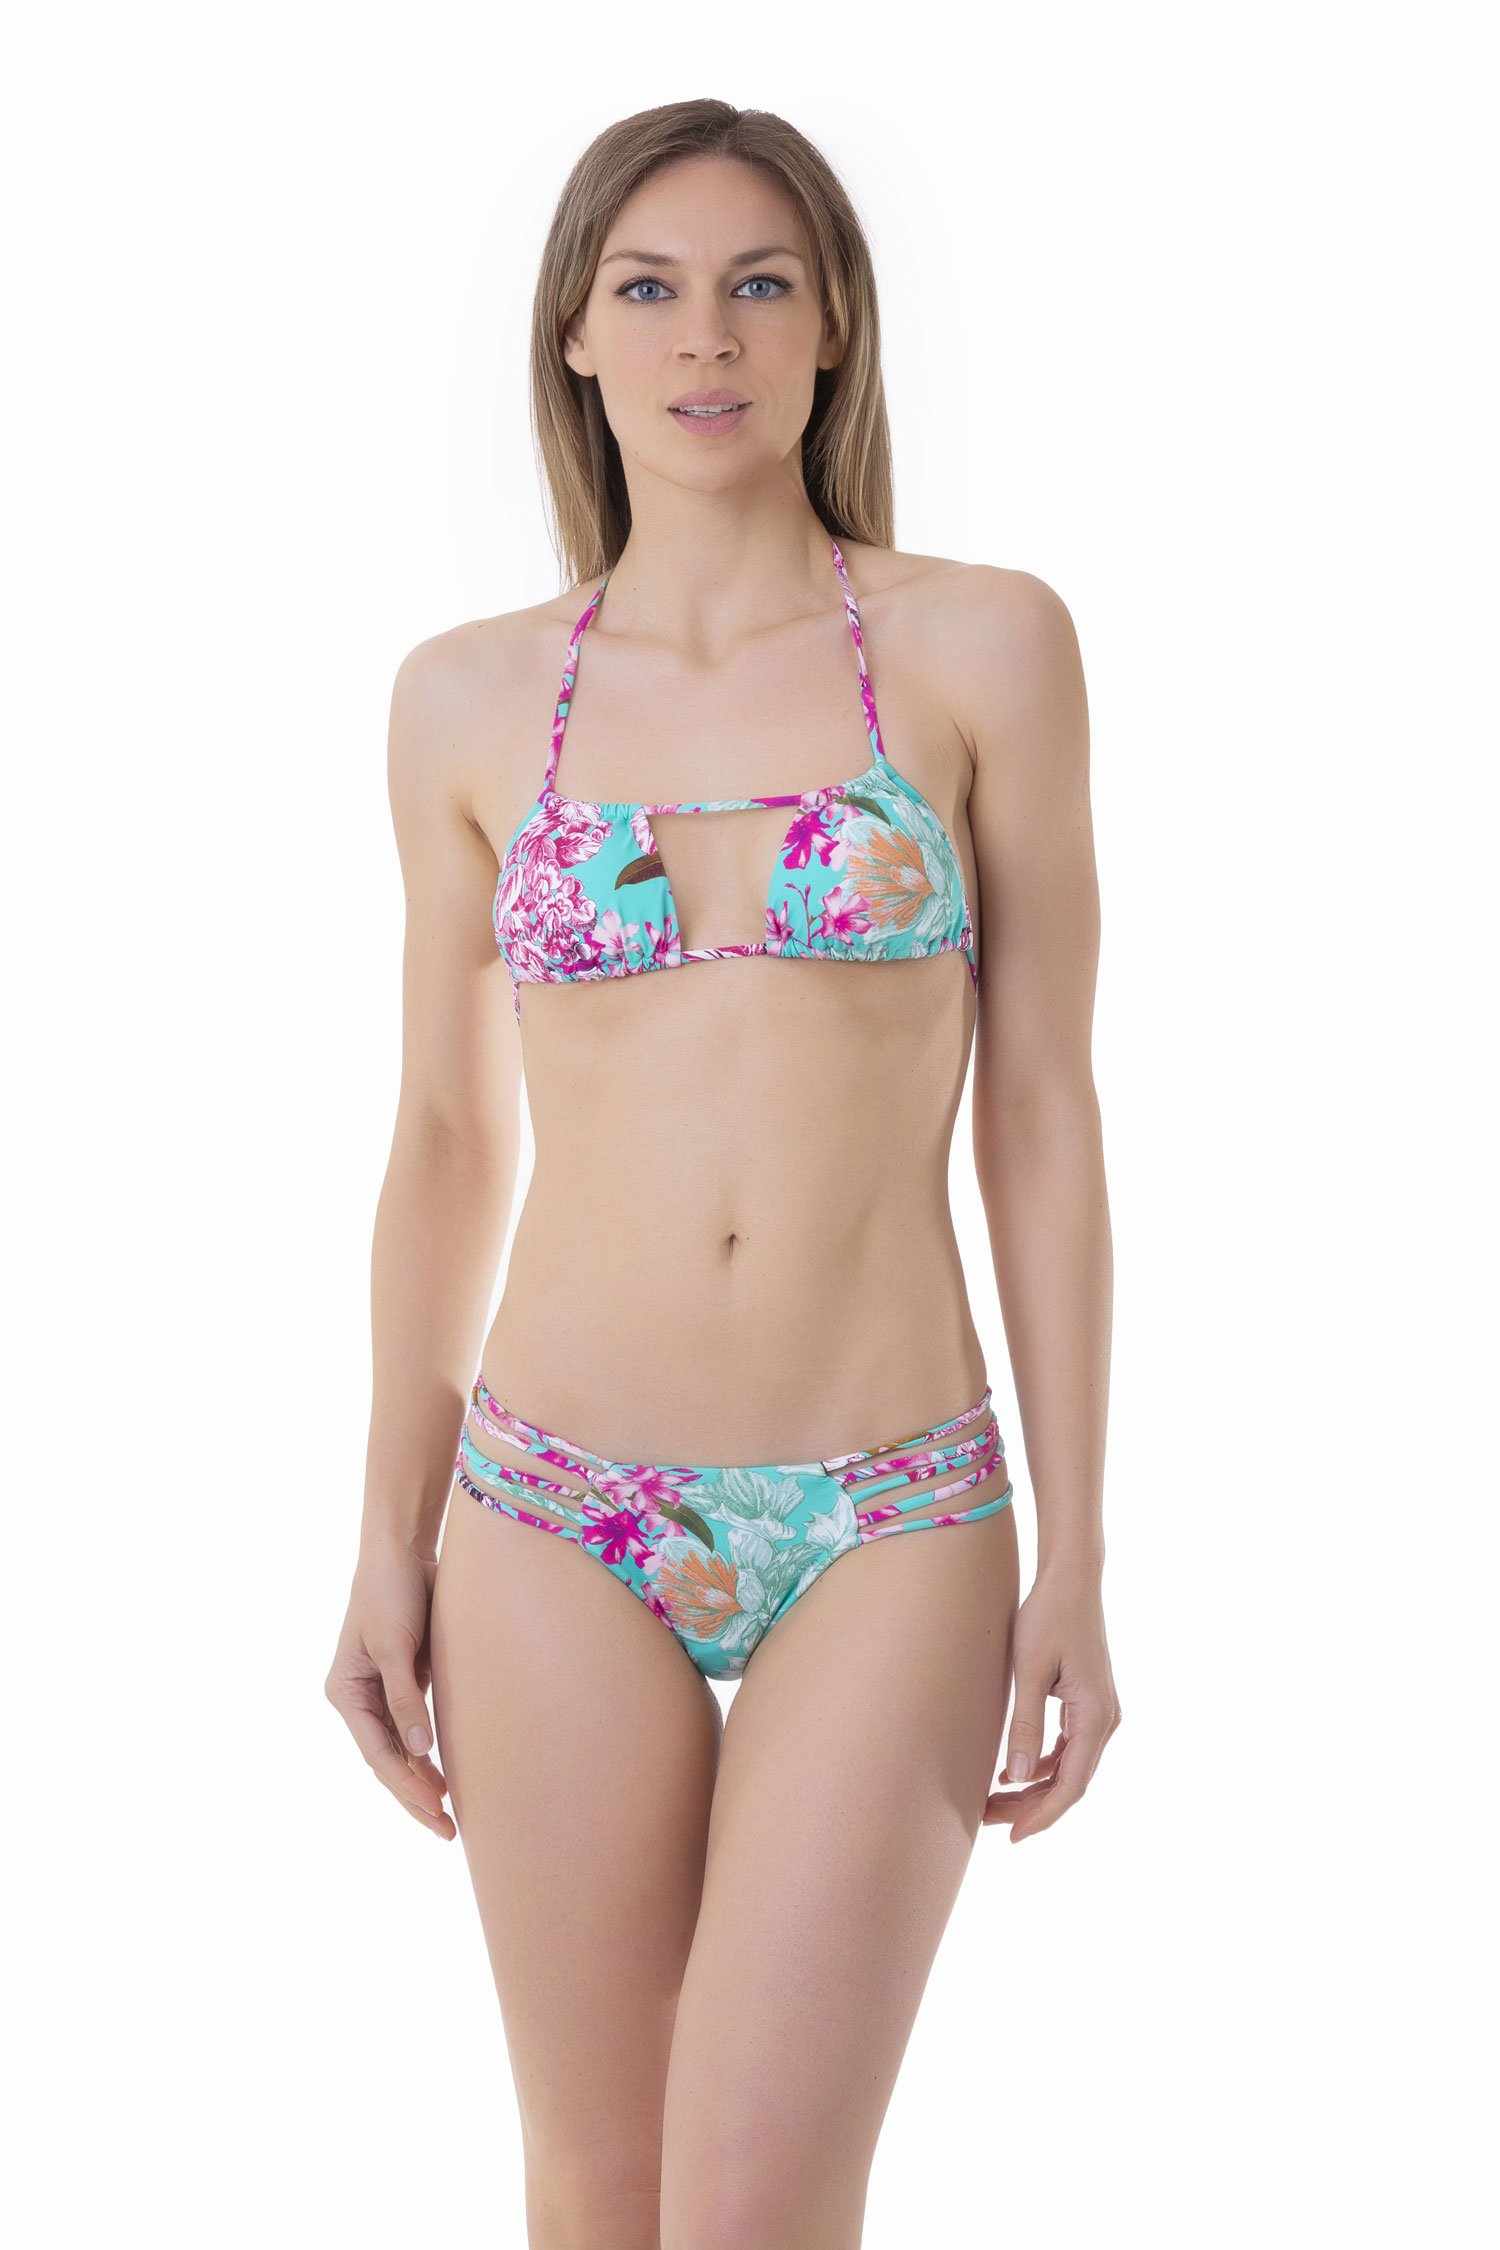 PRINTED TRIANGLE BIKINI WITH CROSSED TIE - Fiori Azzurro